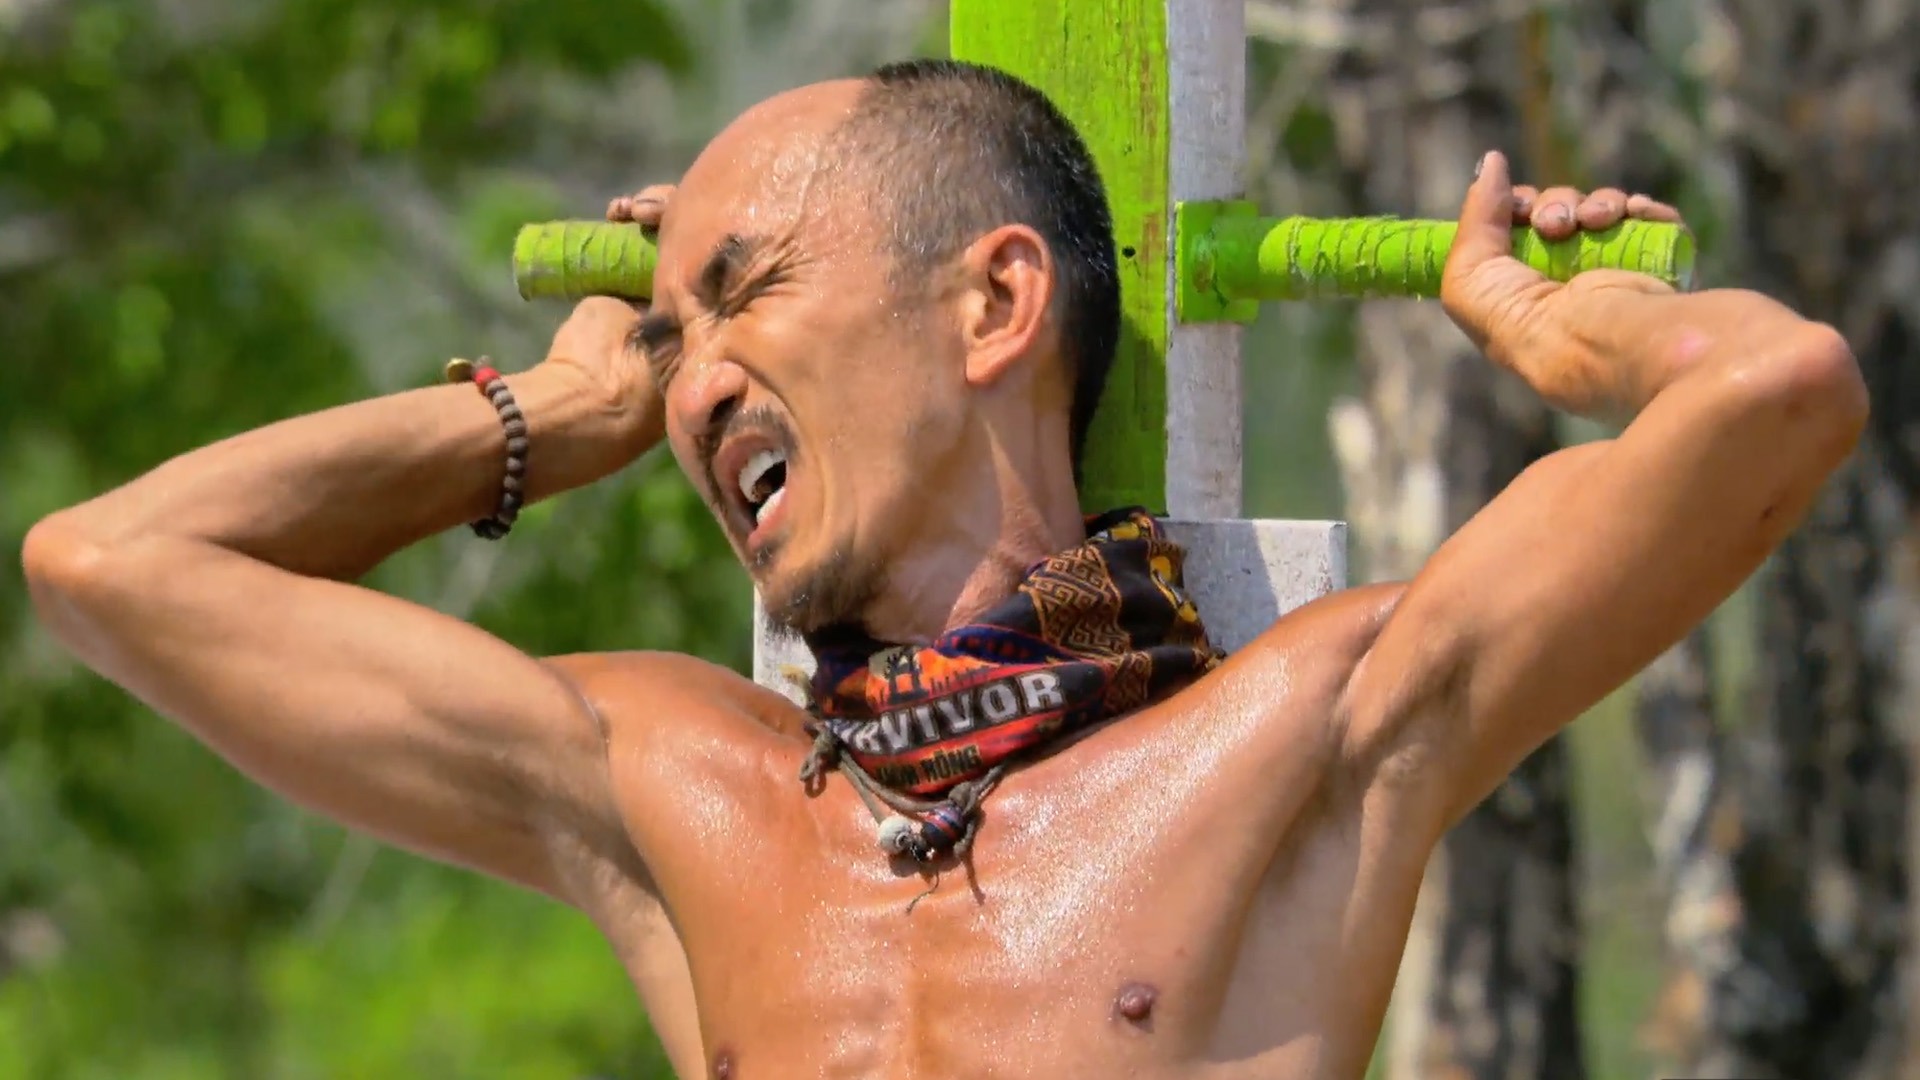 Episode 8: Tai's cringes during the crucifixion challenge.